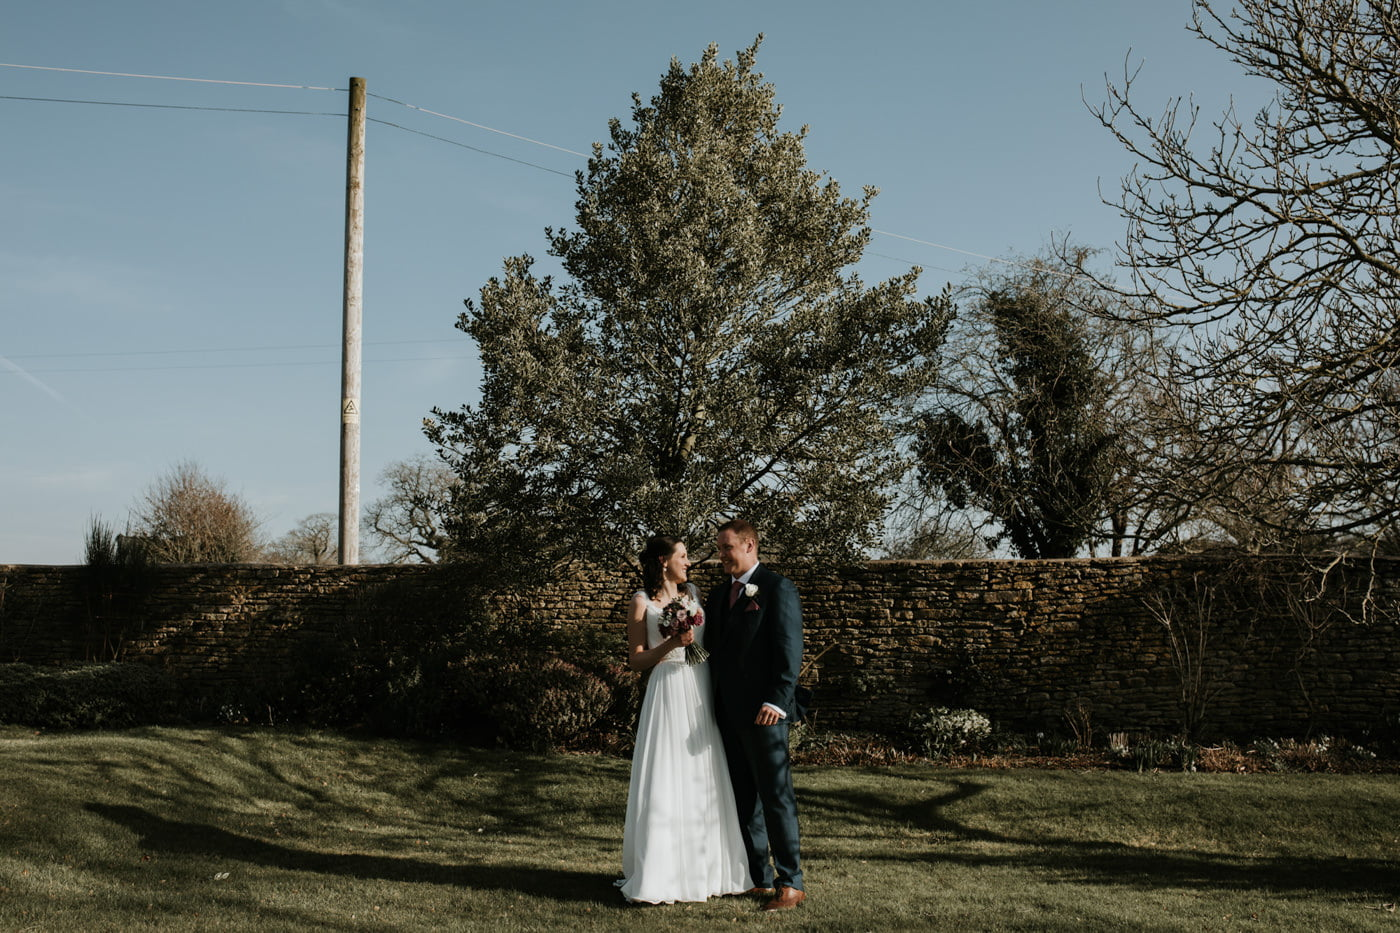 Ruth and Ben, Winkworth Farm, Wiltshire 13